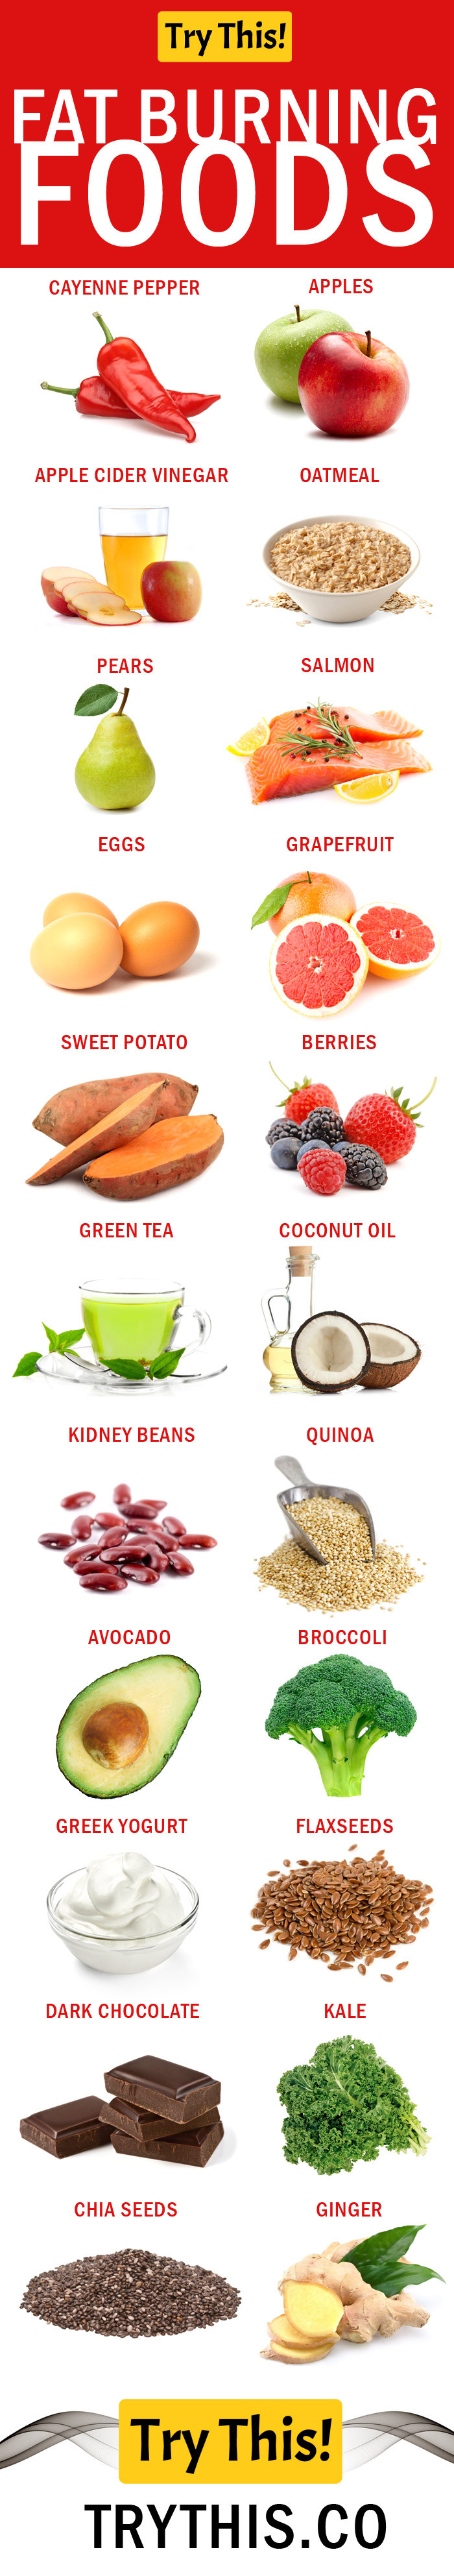 Healthy Fat Burning Snacks  Fat Burning Foods – Best Foods To Eat For Weight Loss